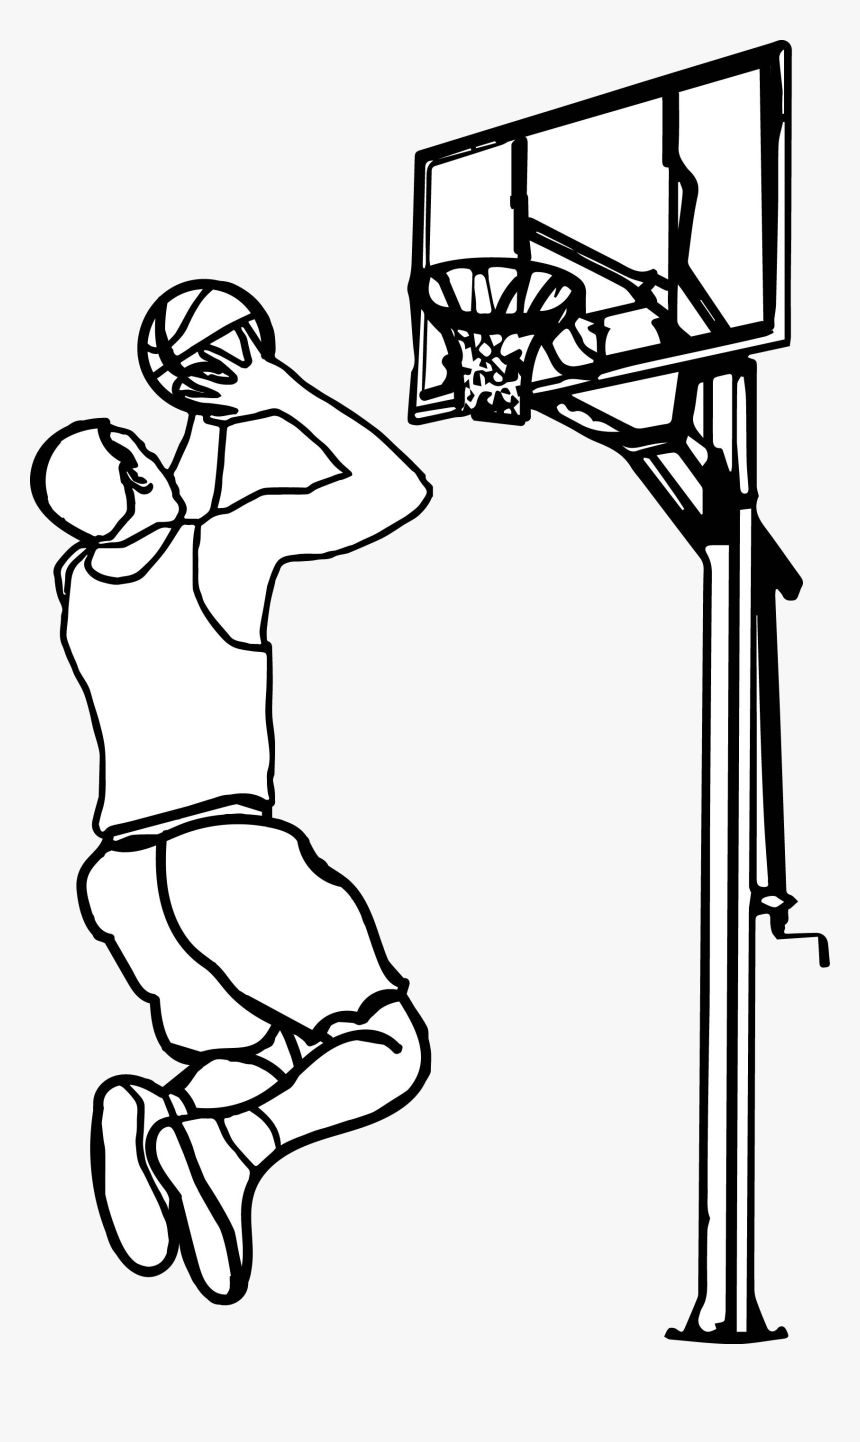 16+ Basketball clipart black and white free ideas